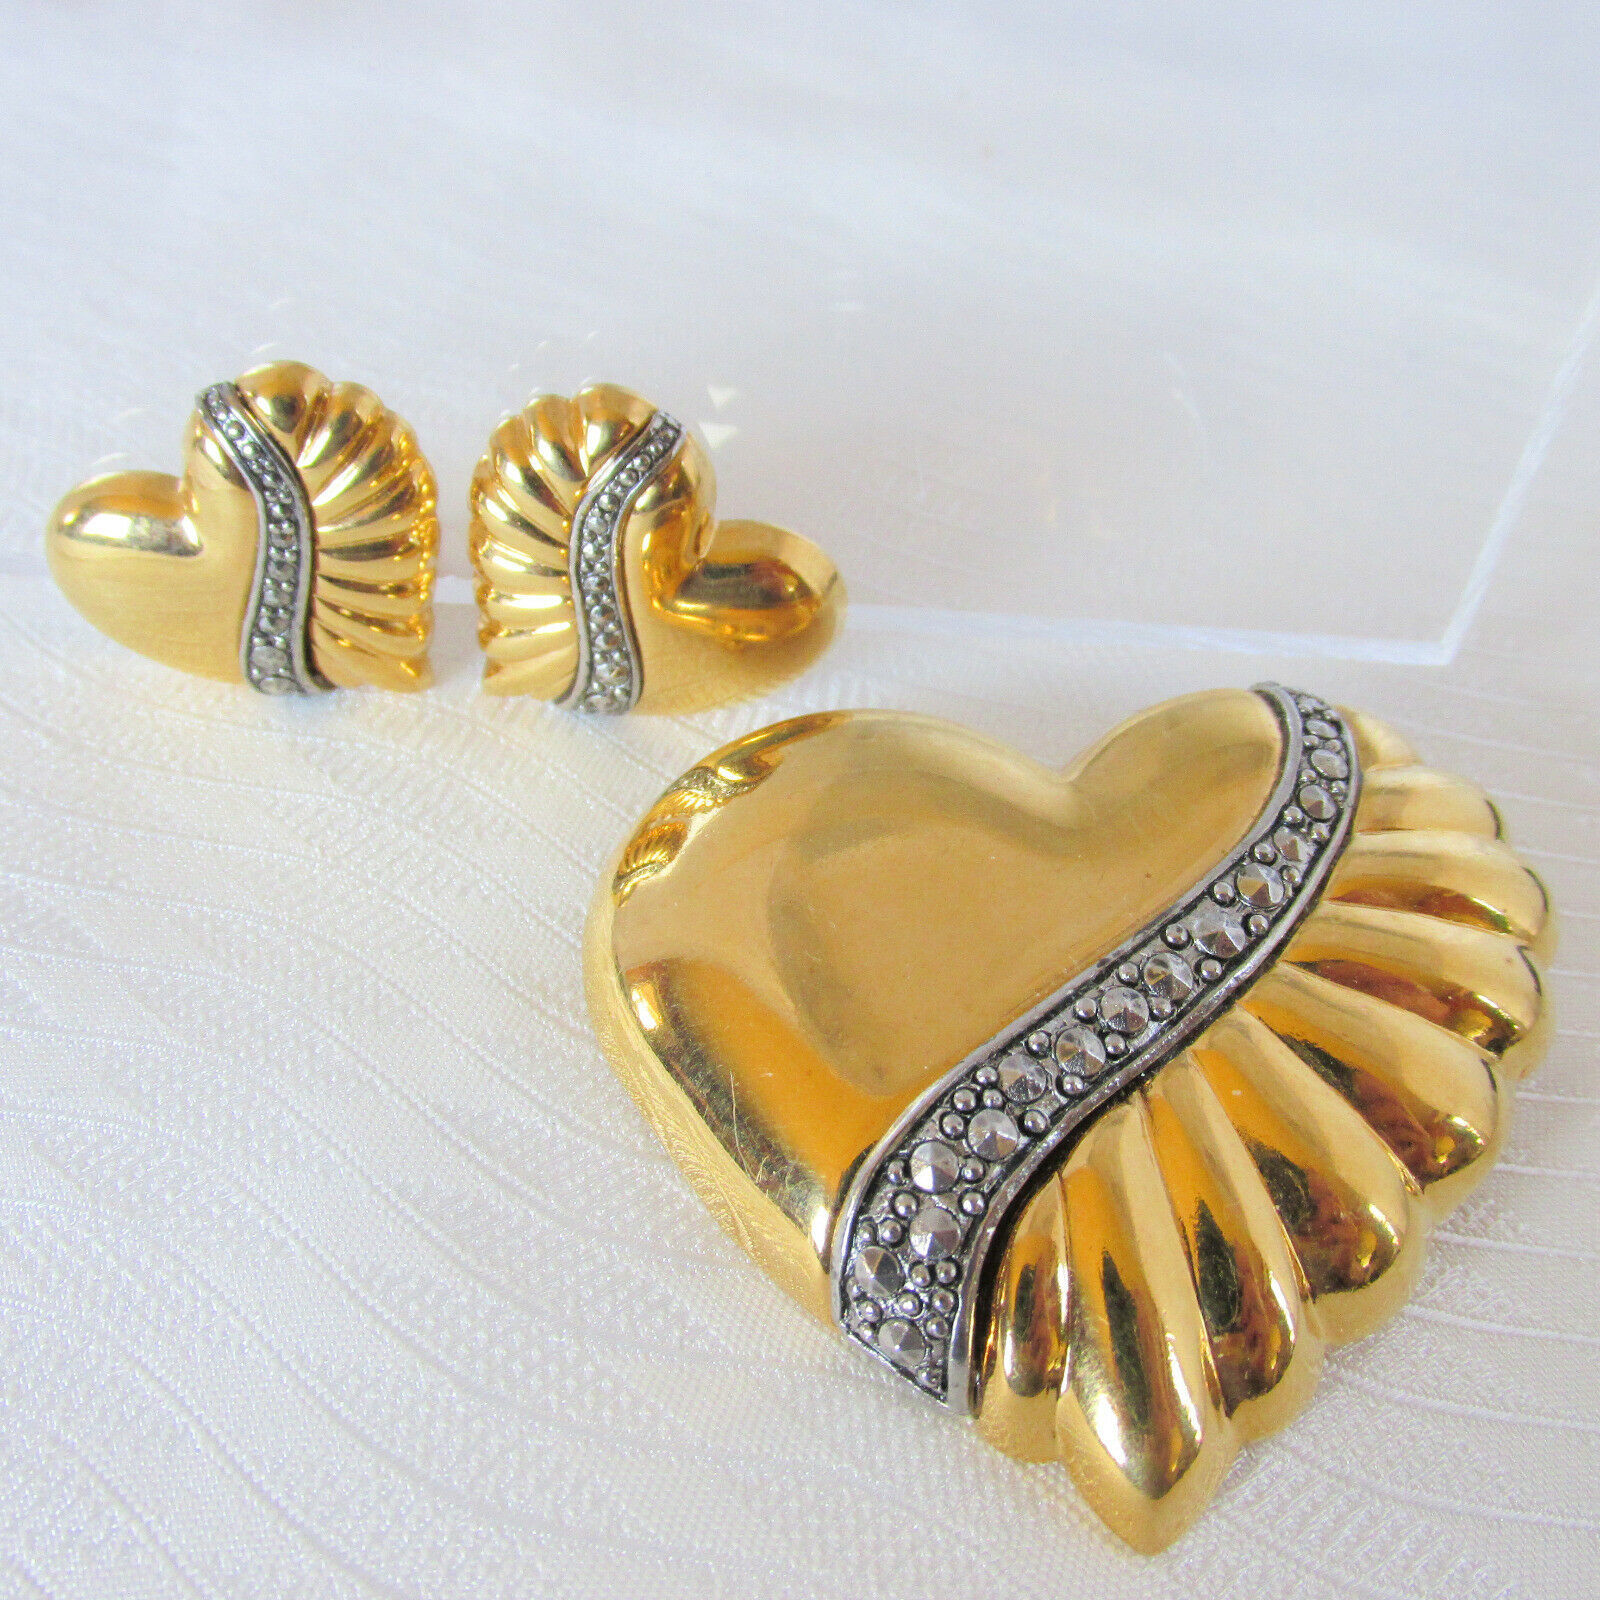 1980s Vintage Marcasite Puffy Hearts Brooch Pin Earring Set Heavy Gold Plate